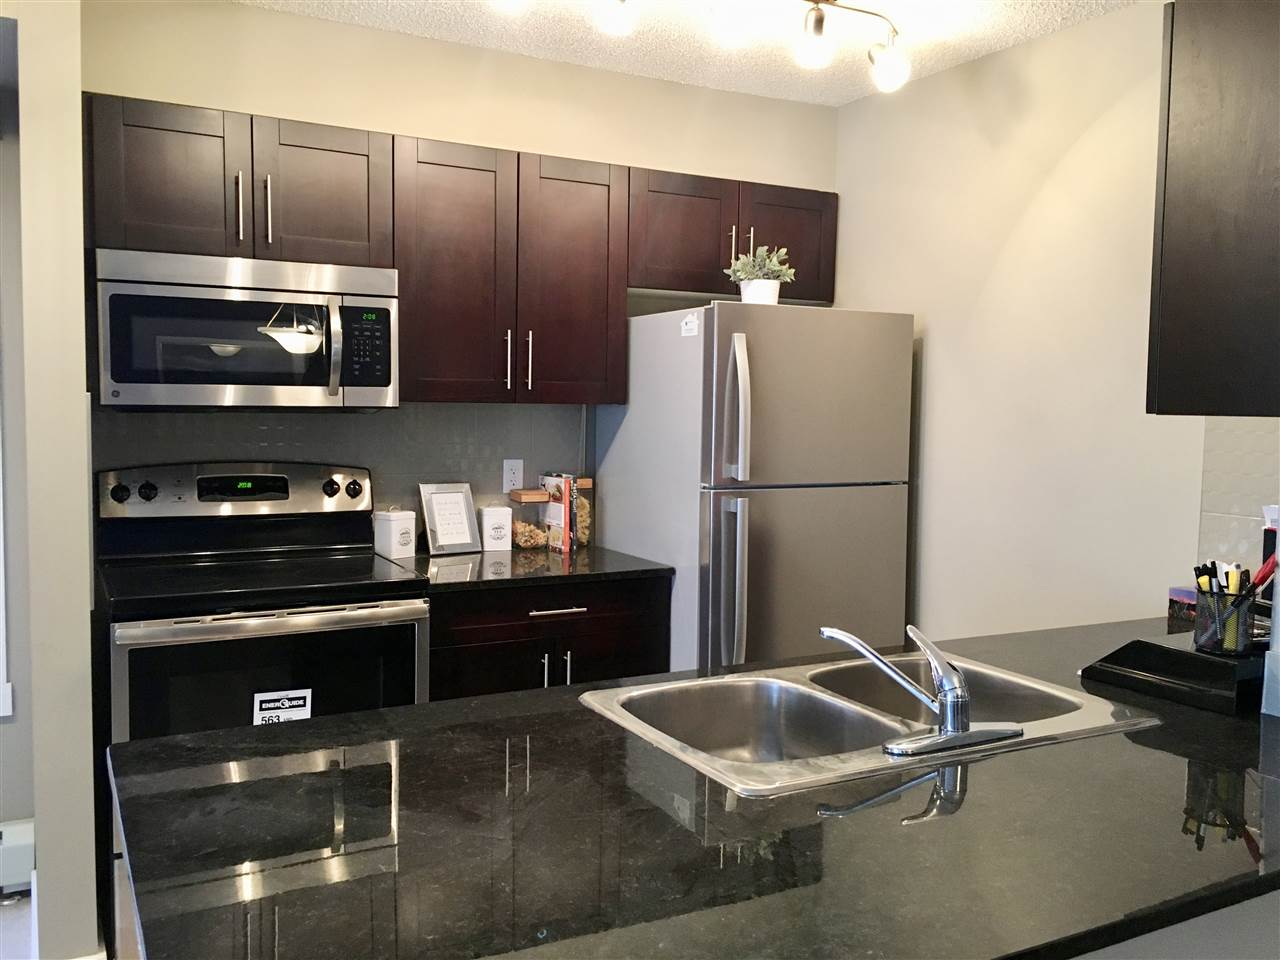 115 1510 WATT Drive, 2 bed, 1 bath, at $171,900